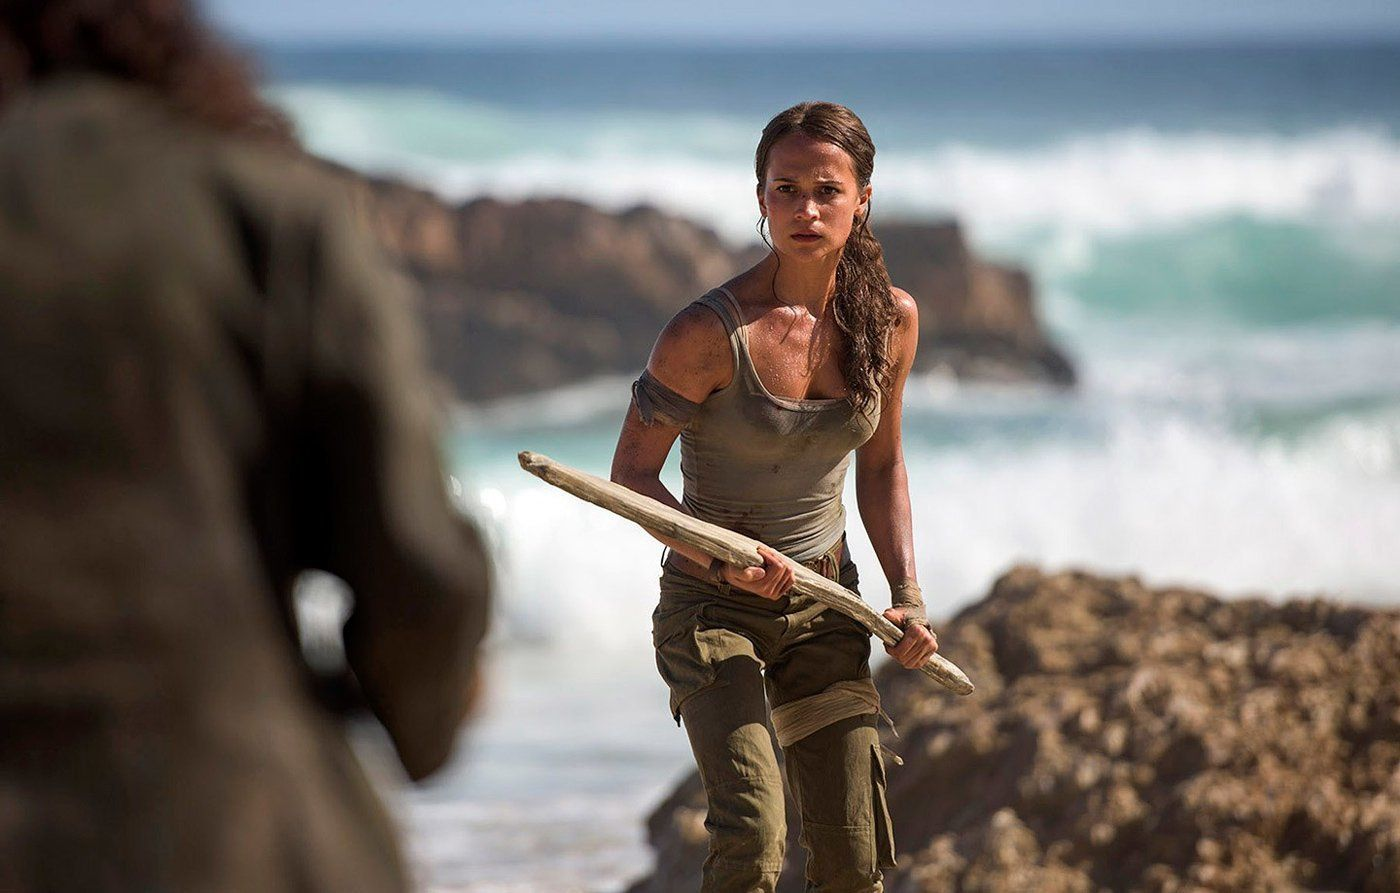 Here's how Lara Croft looks in the new Tomb Raider movie here-s-how-lara-croft-looks-in-the-new-tomb-raider-movie-427739.phtml